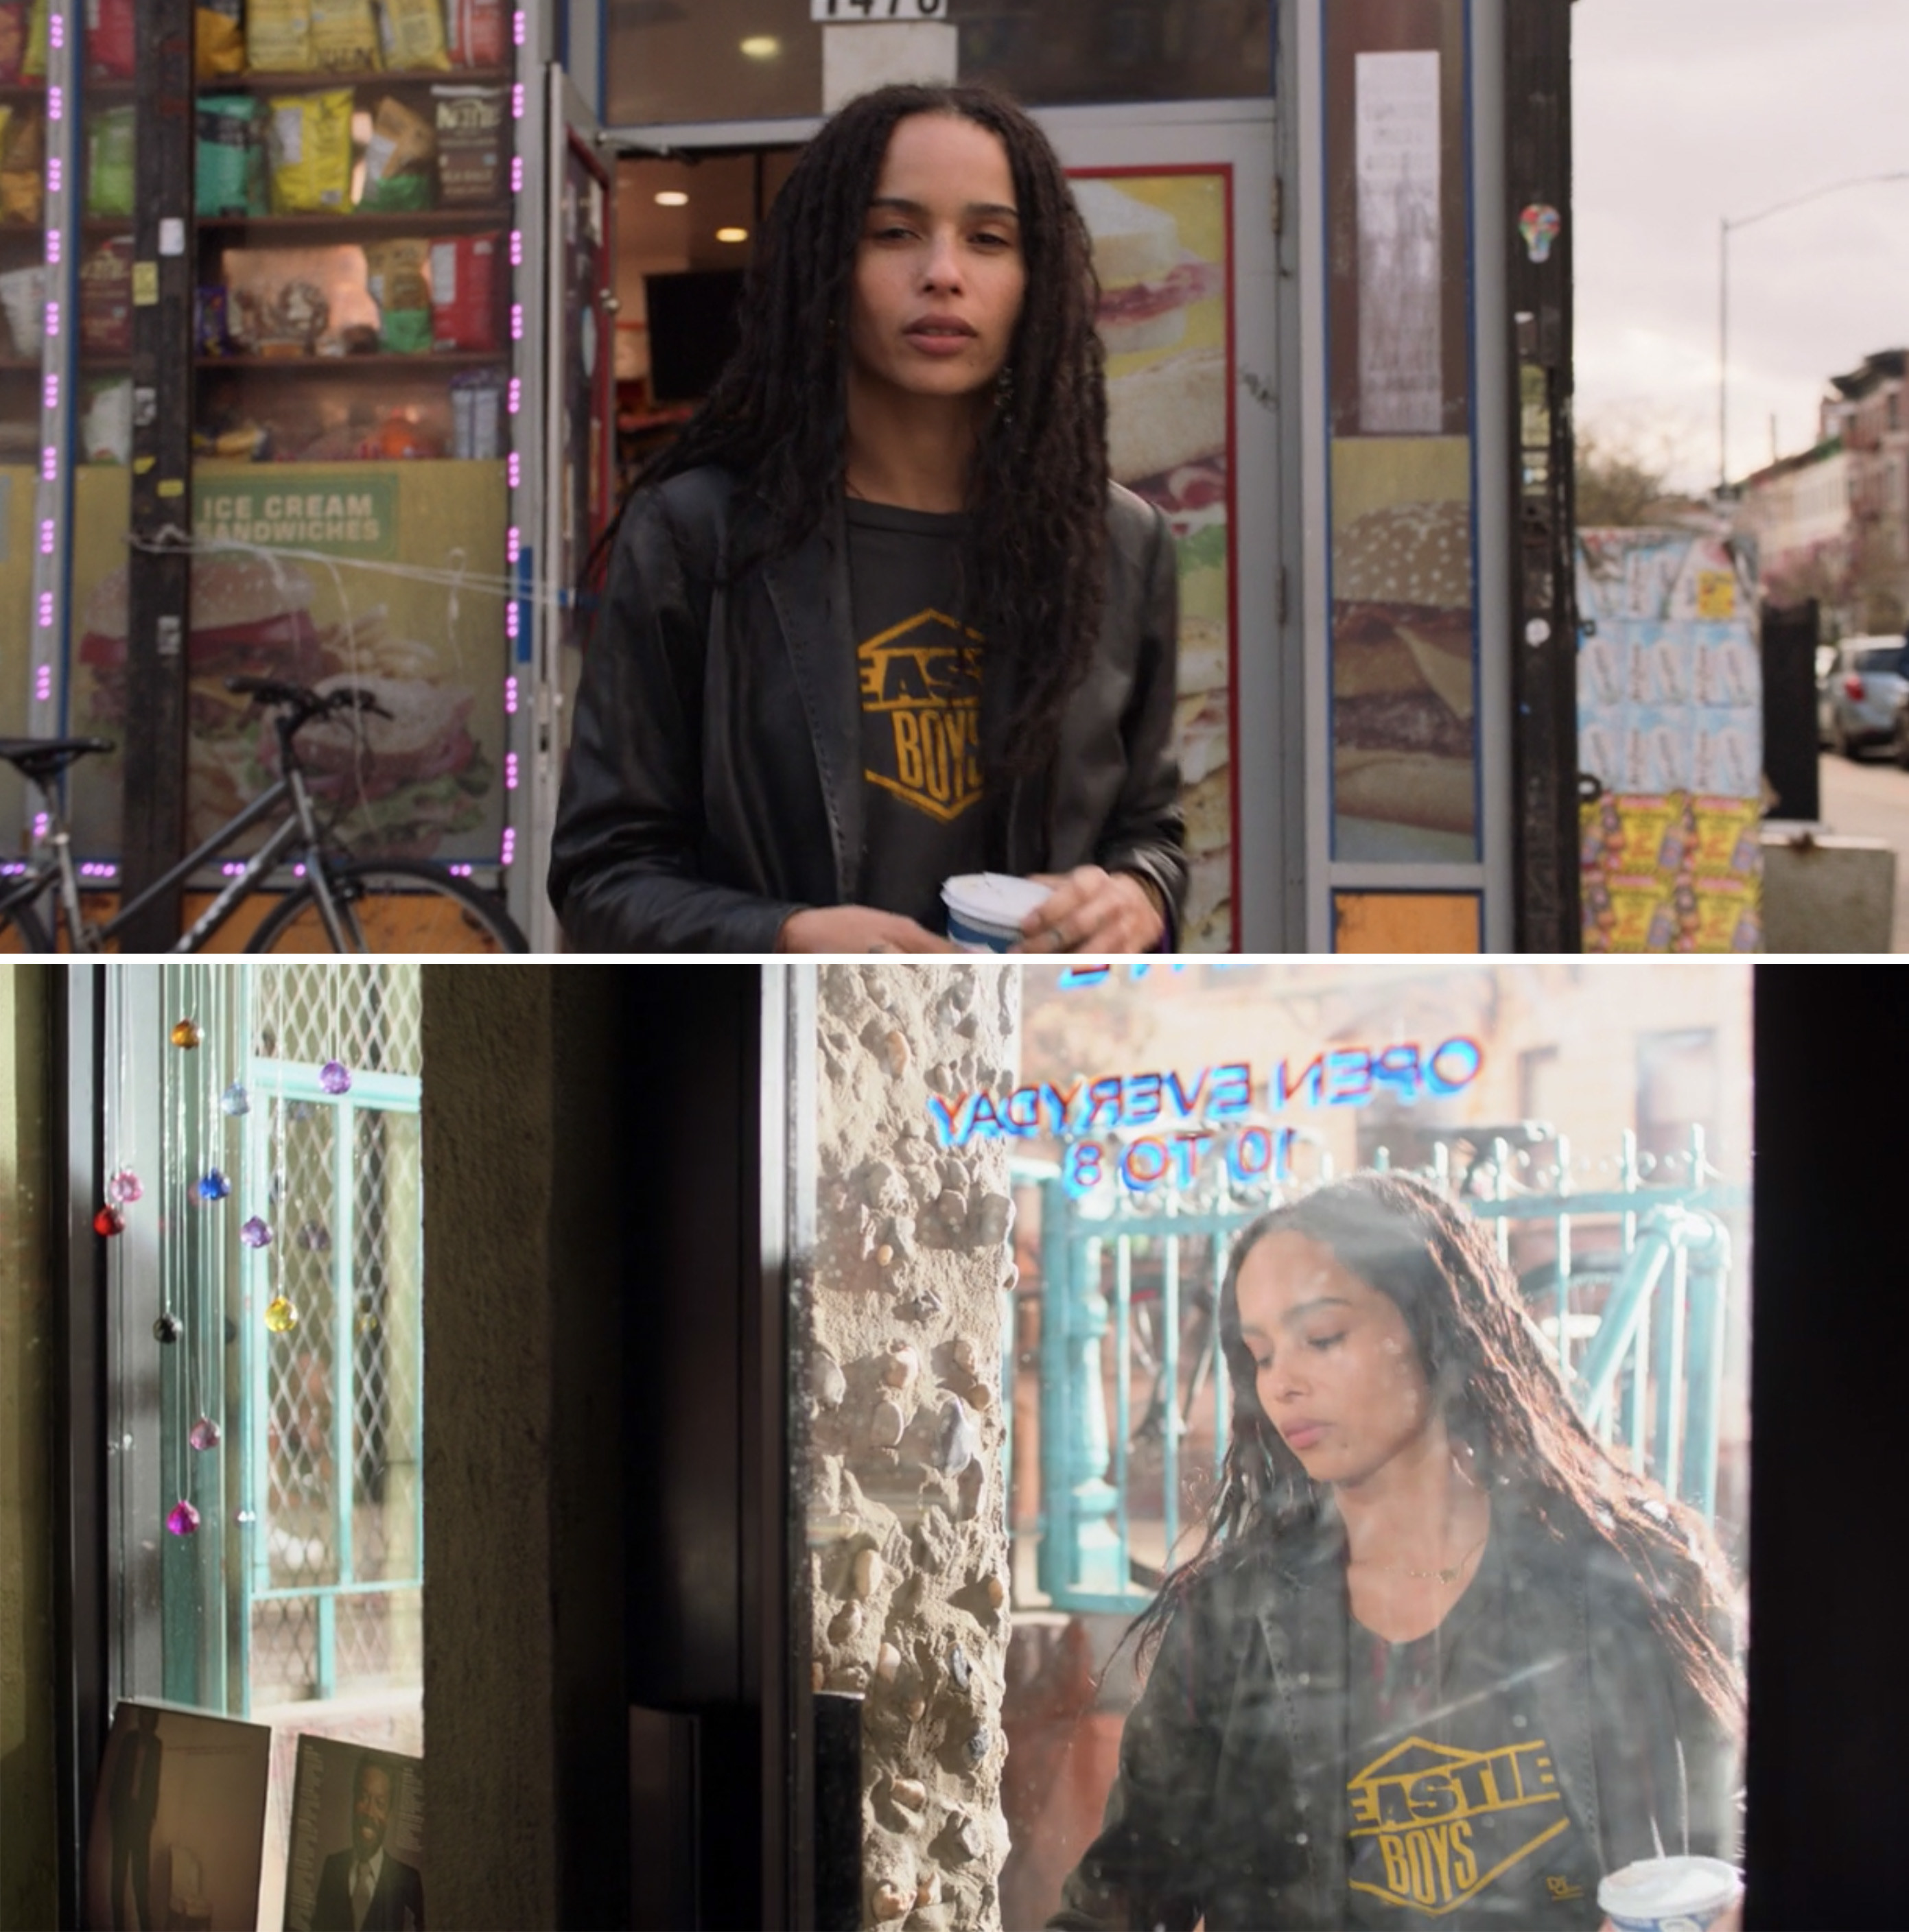 Rob standing on the street and entering her record store